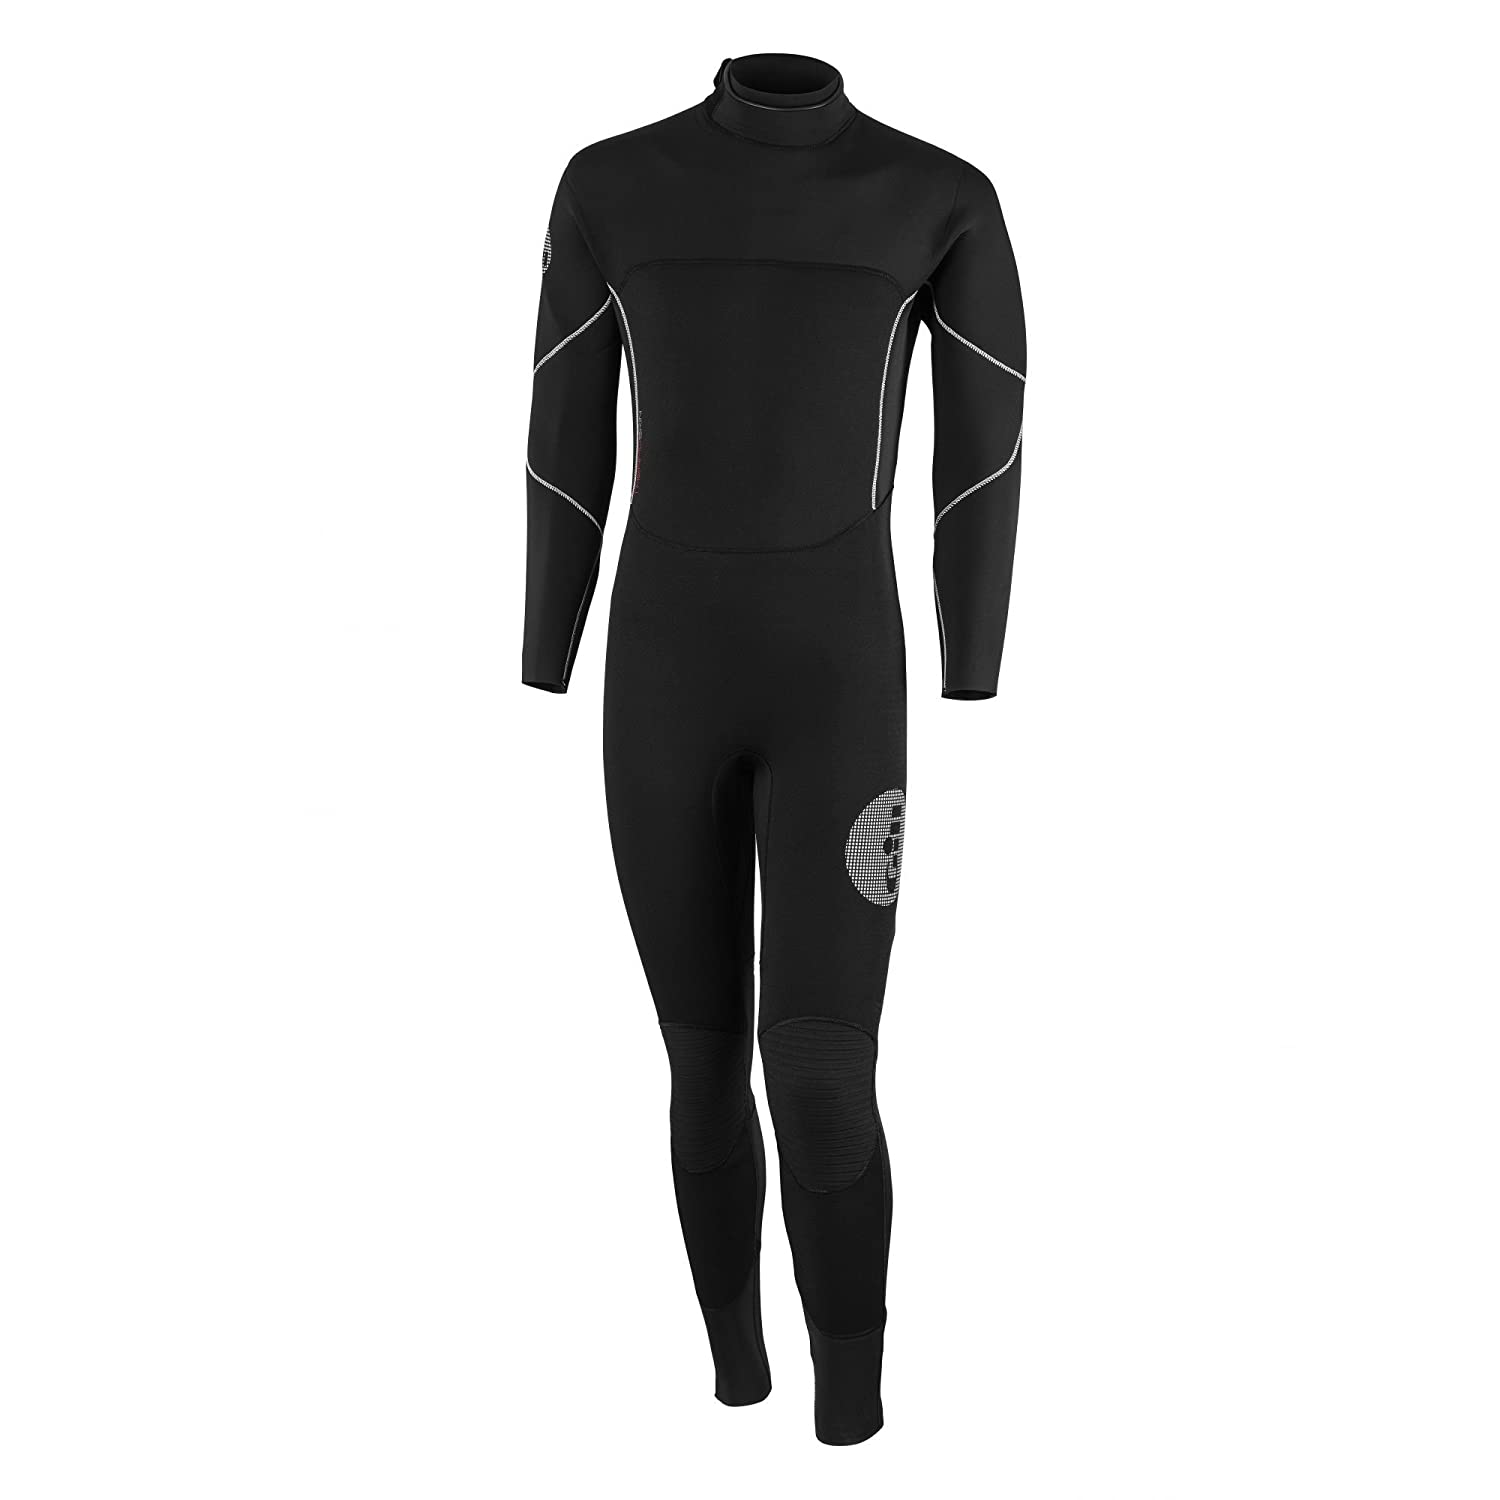 Gill 2016 Thermoskin 5/3mm GBS Wetsuit in Black 4609